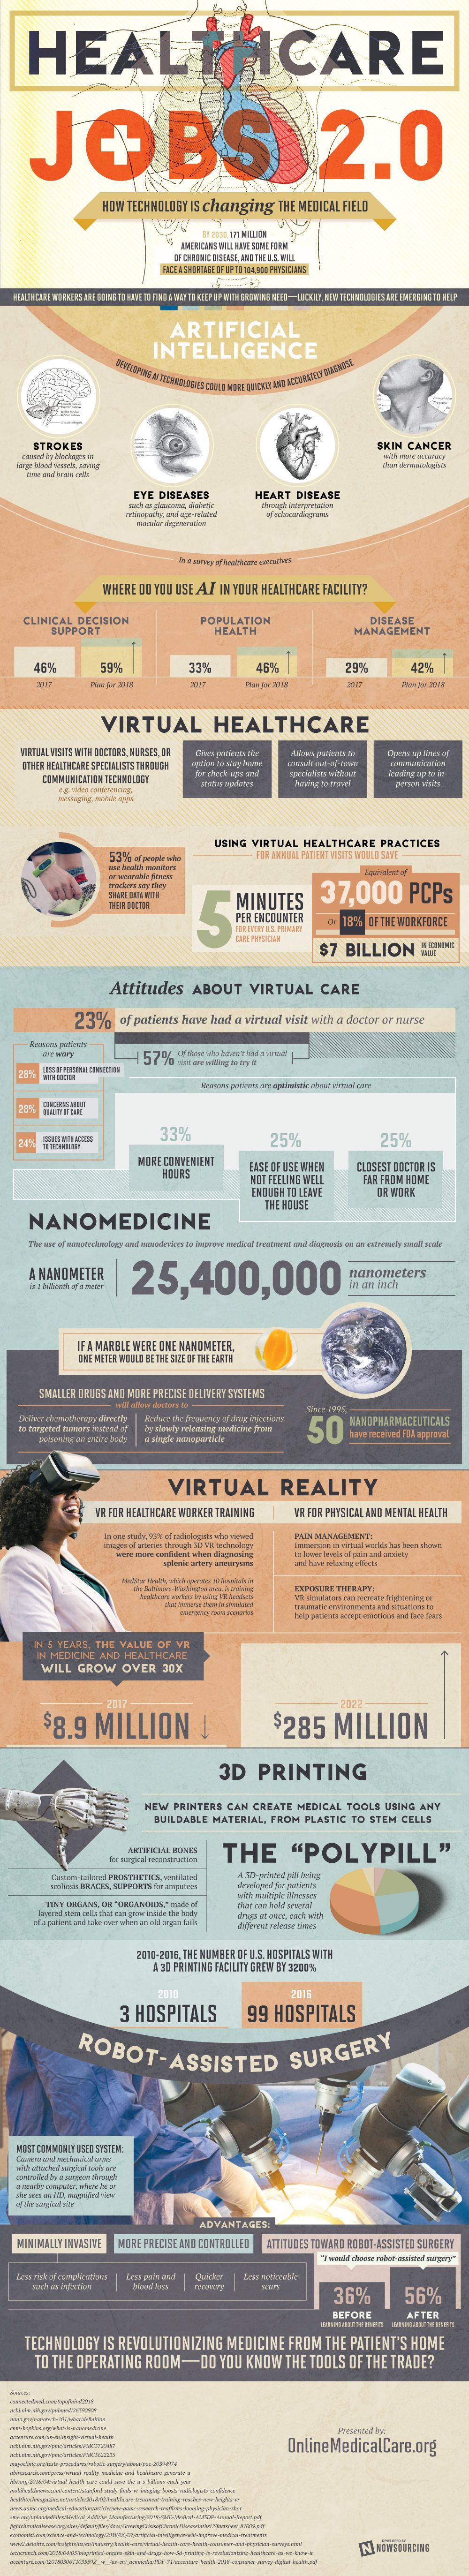 Medical Technology Healthcare Jobs Medical Field Infographic Health